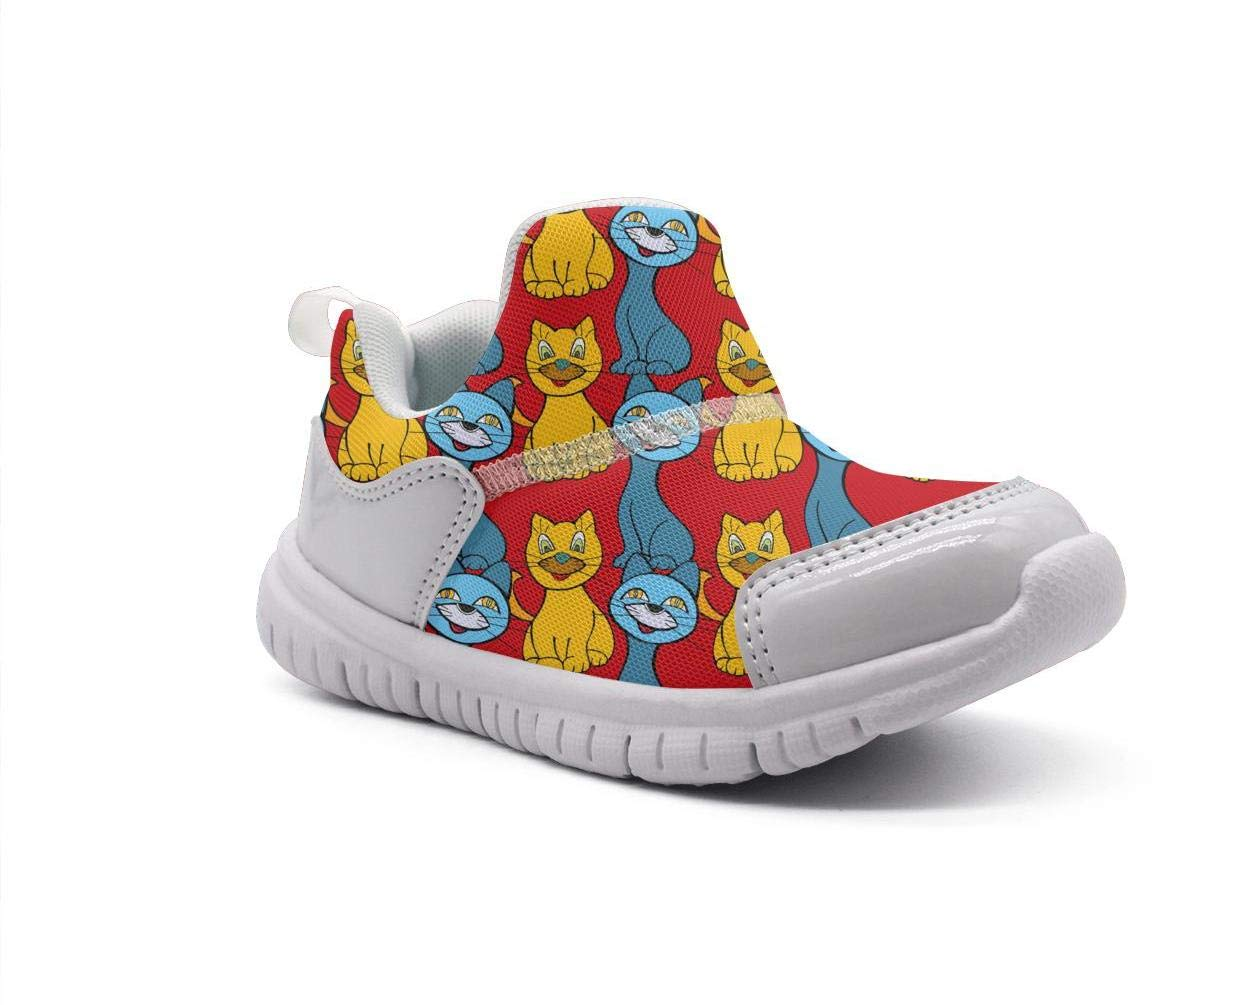 ONEYUAN Children Cute Cartoon Cats Red Background Kid Casual Lightweight Sport Shoes Sneakers Walking Athletic Shoes